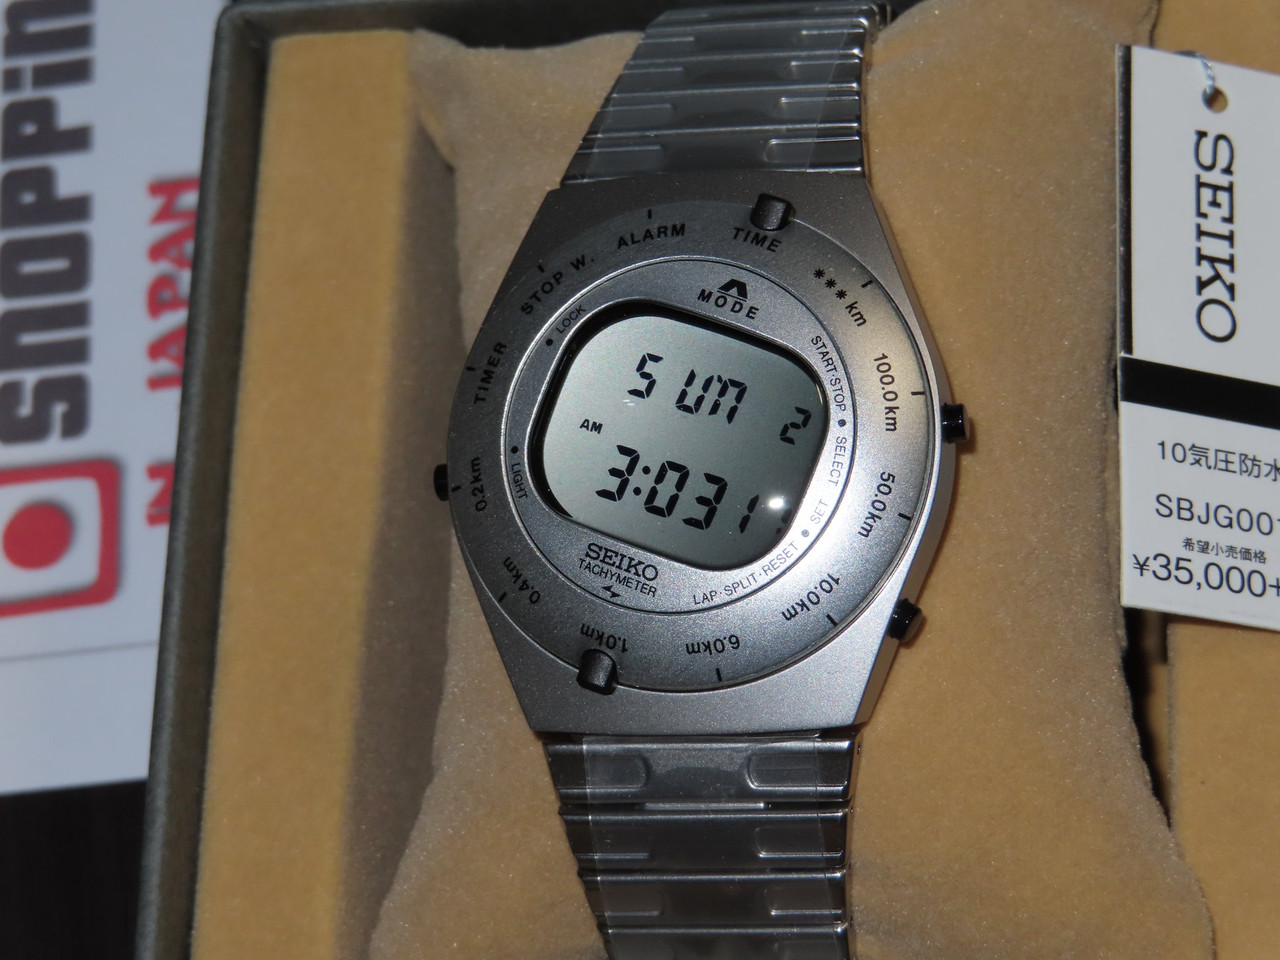 Seiko Giugiaro Design Digital Watch SBJG001